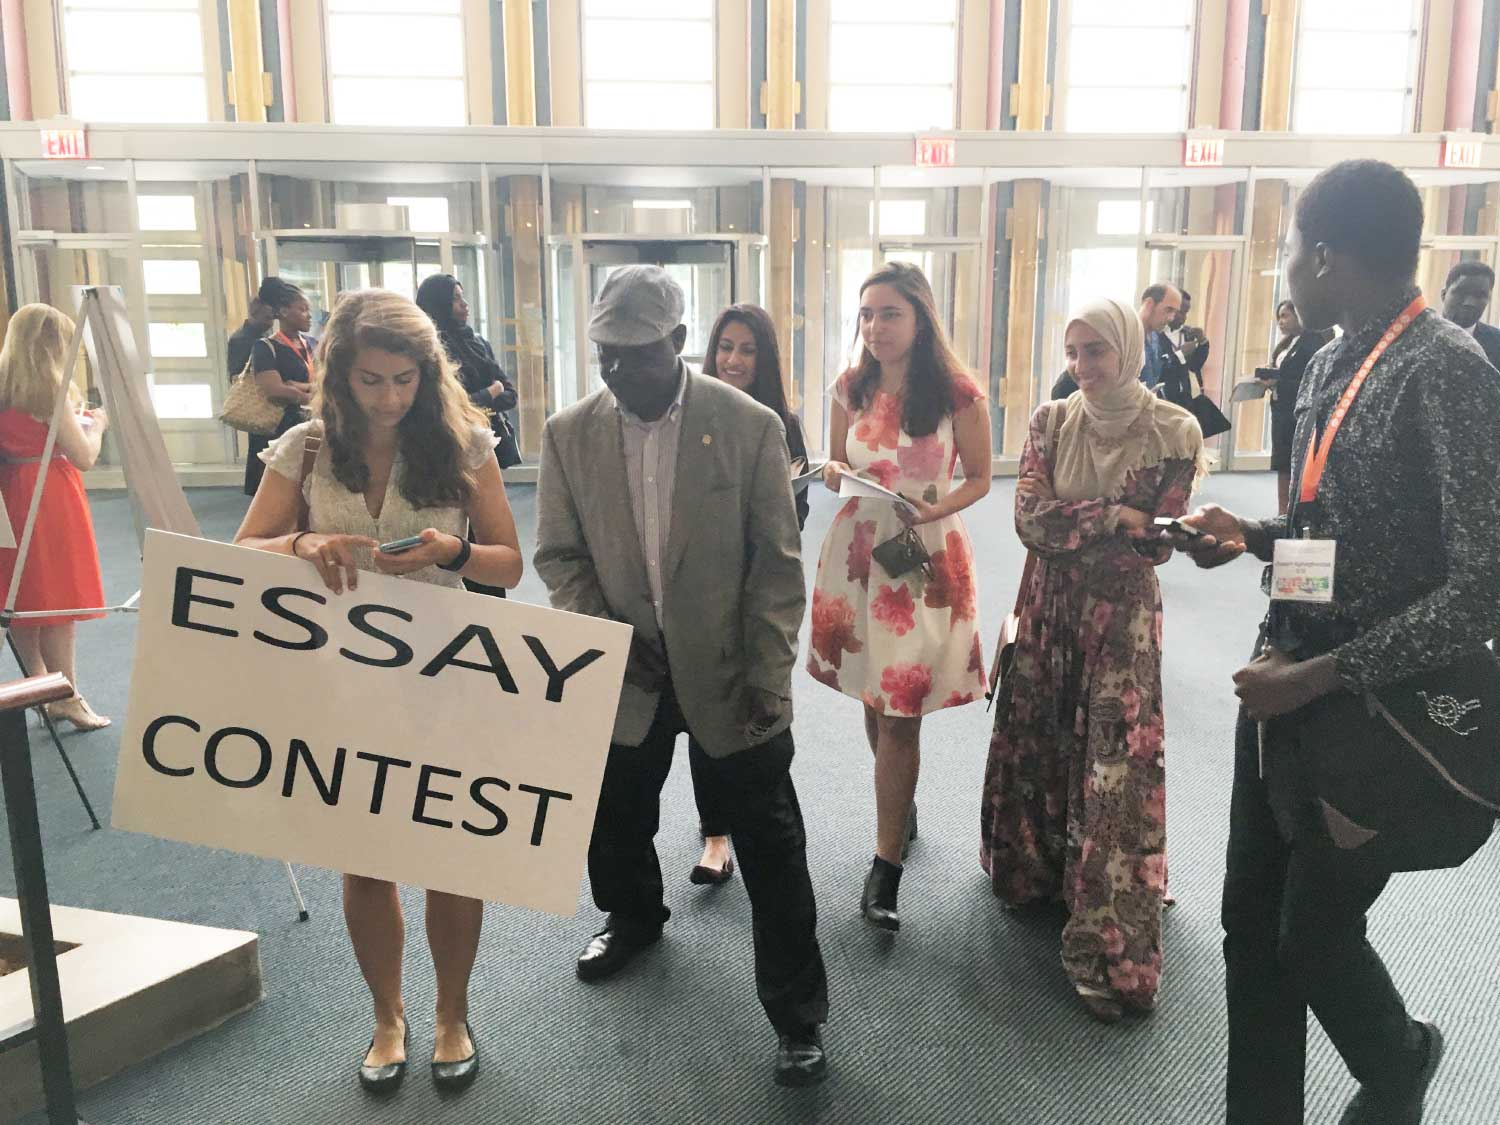 Photo: young people in lobby with Essay Contest sign